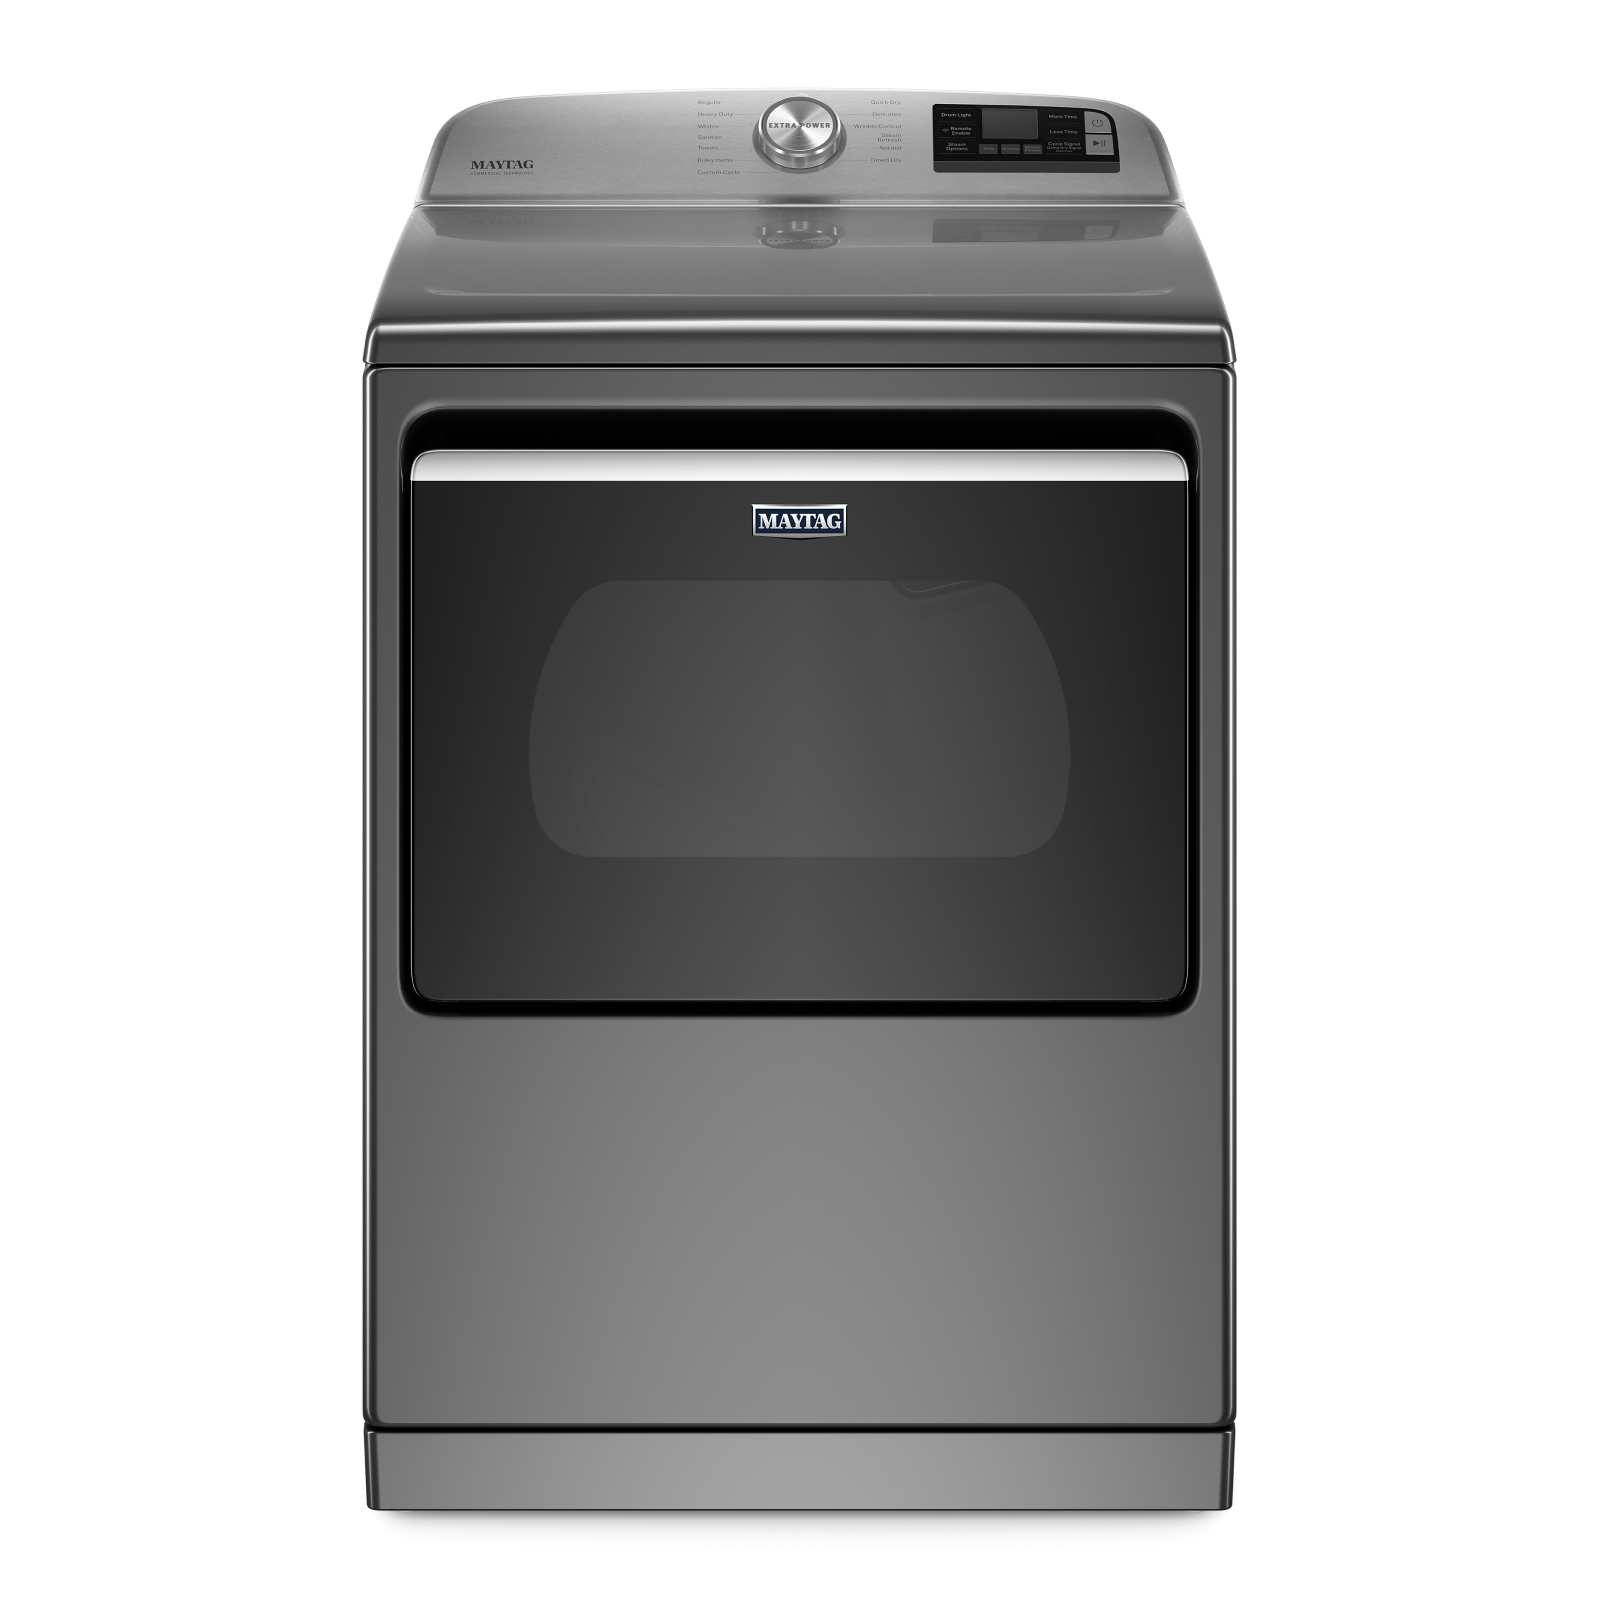 Maytag Dryer YMED7230HC in Grey color showcased by Corbeil Electro Store